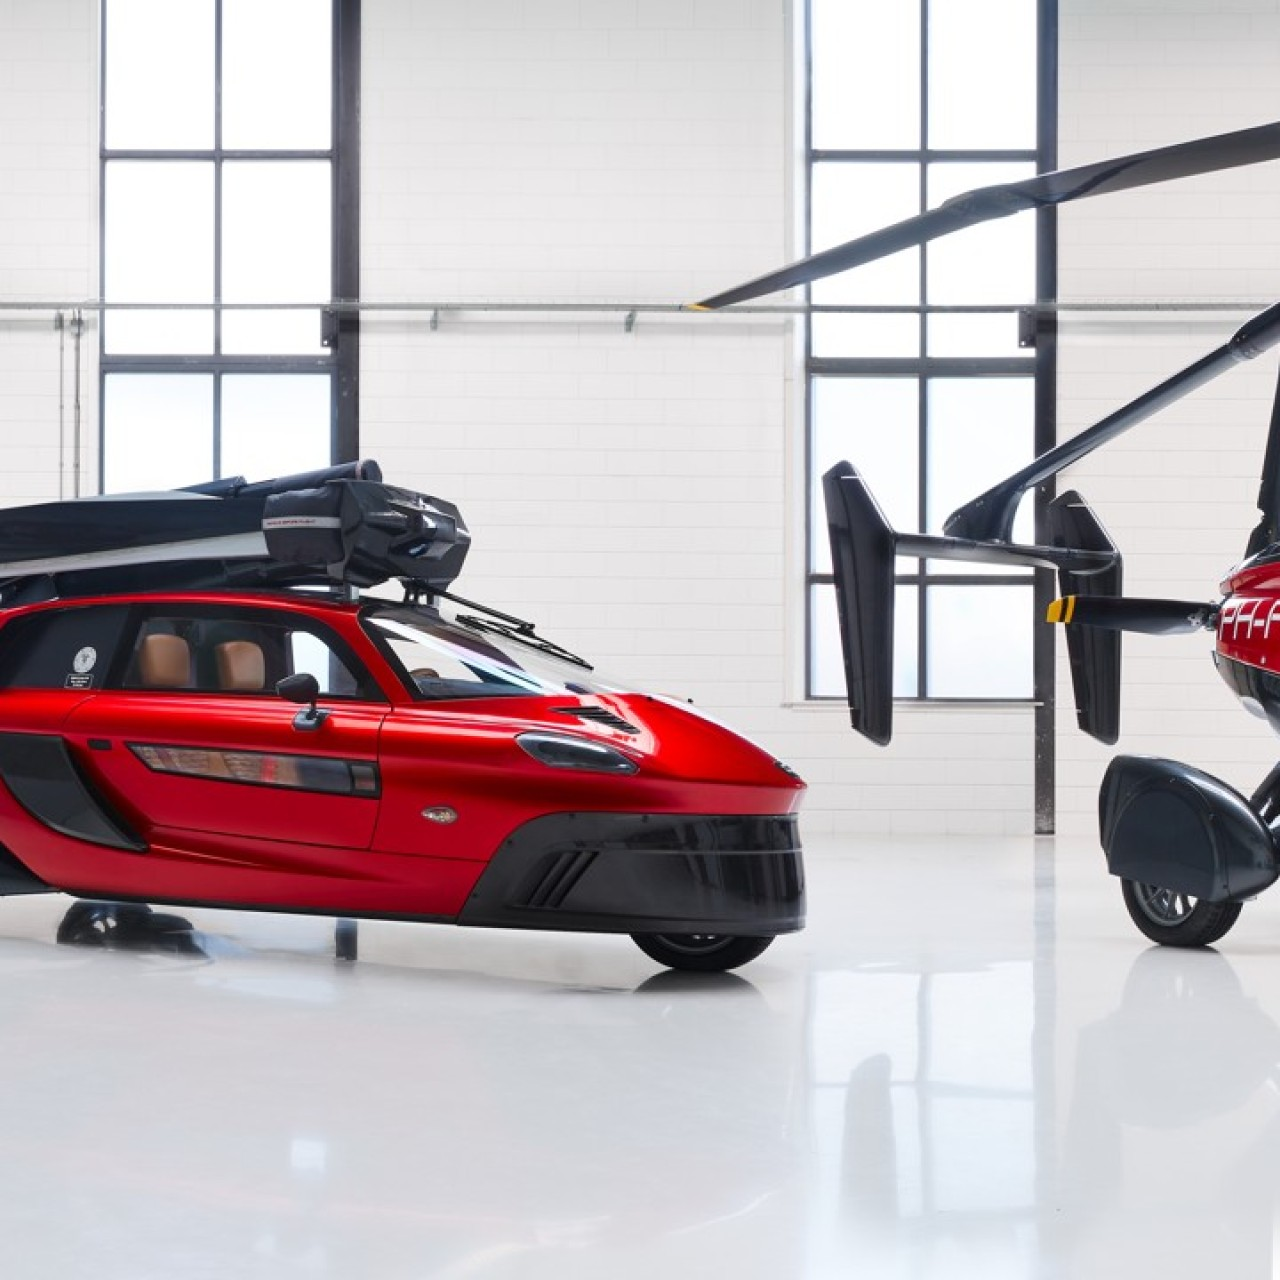 World's first flying car, a two-seater Pal-V Liberty, on track for